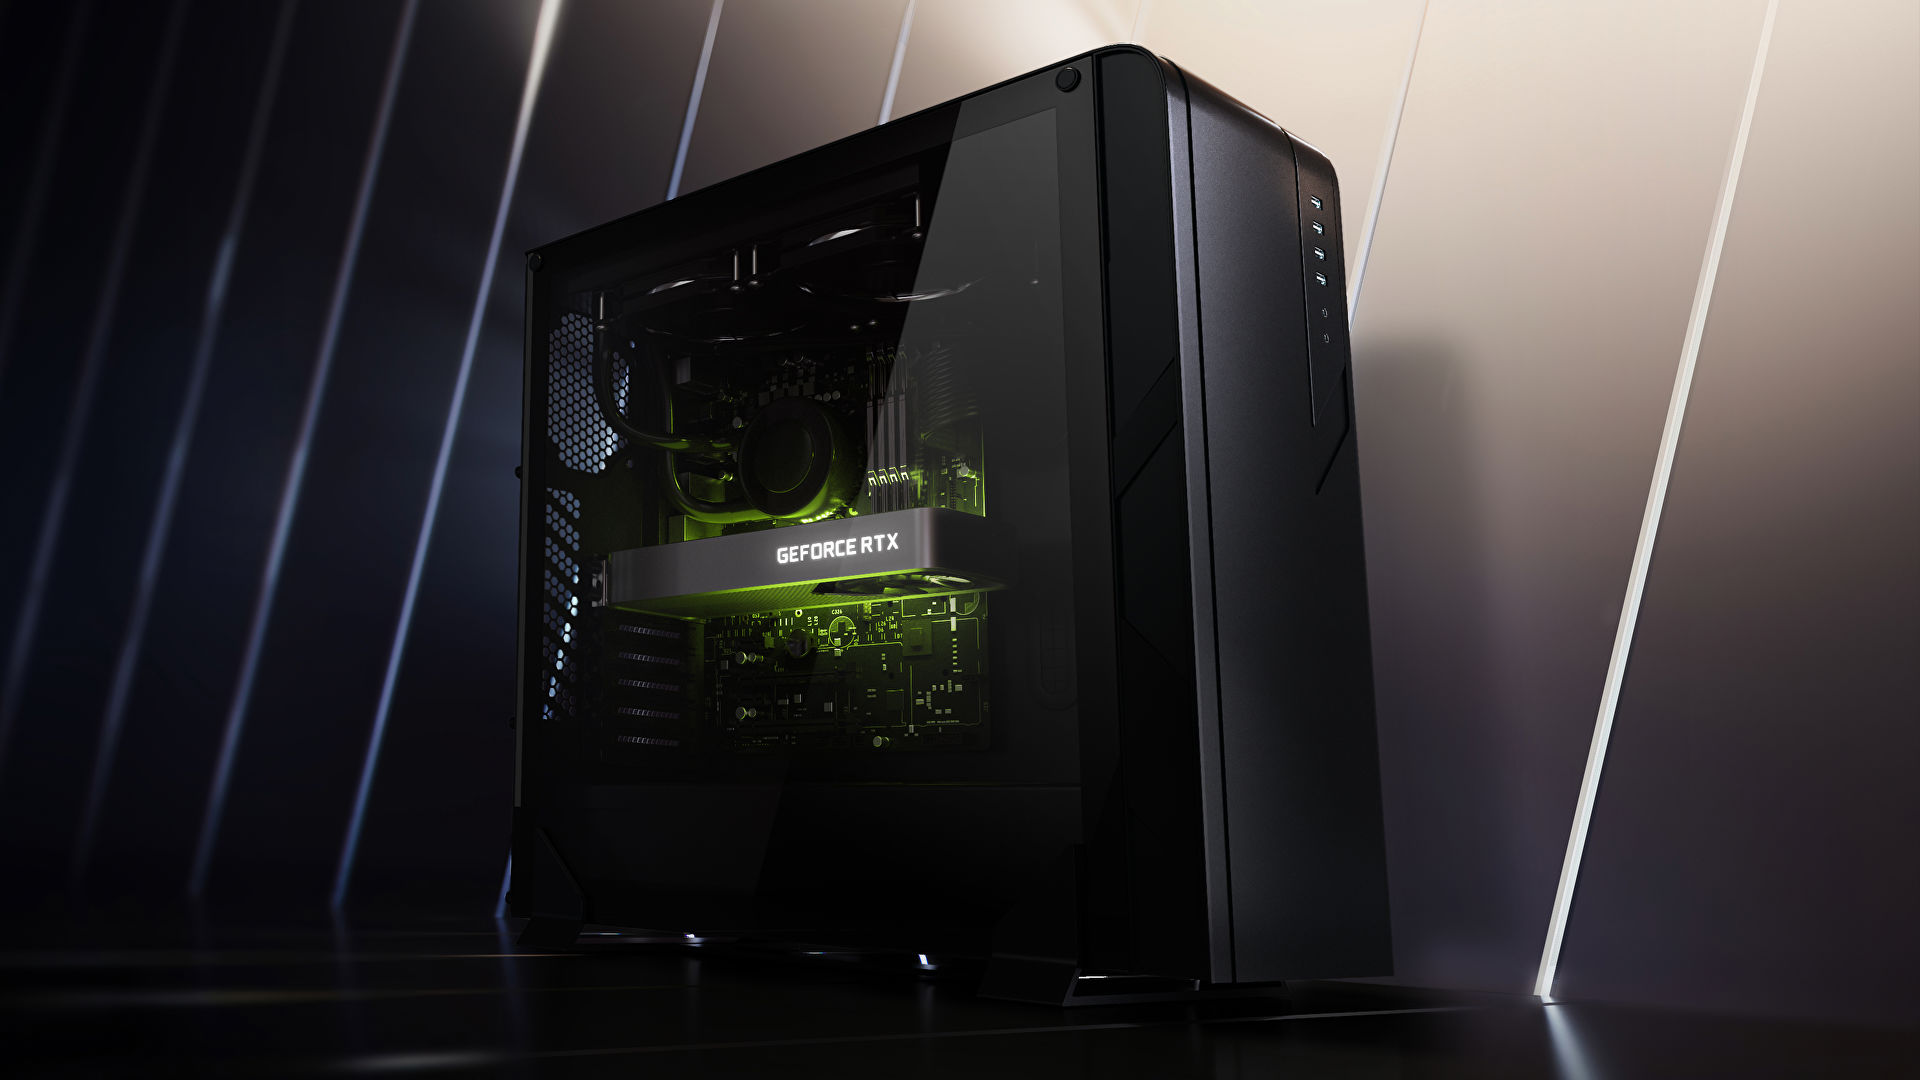 Nvidia RTX 3060 release date is definitely February 25th